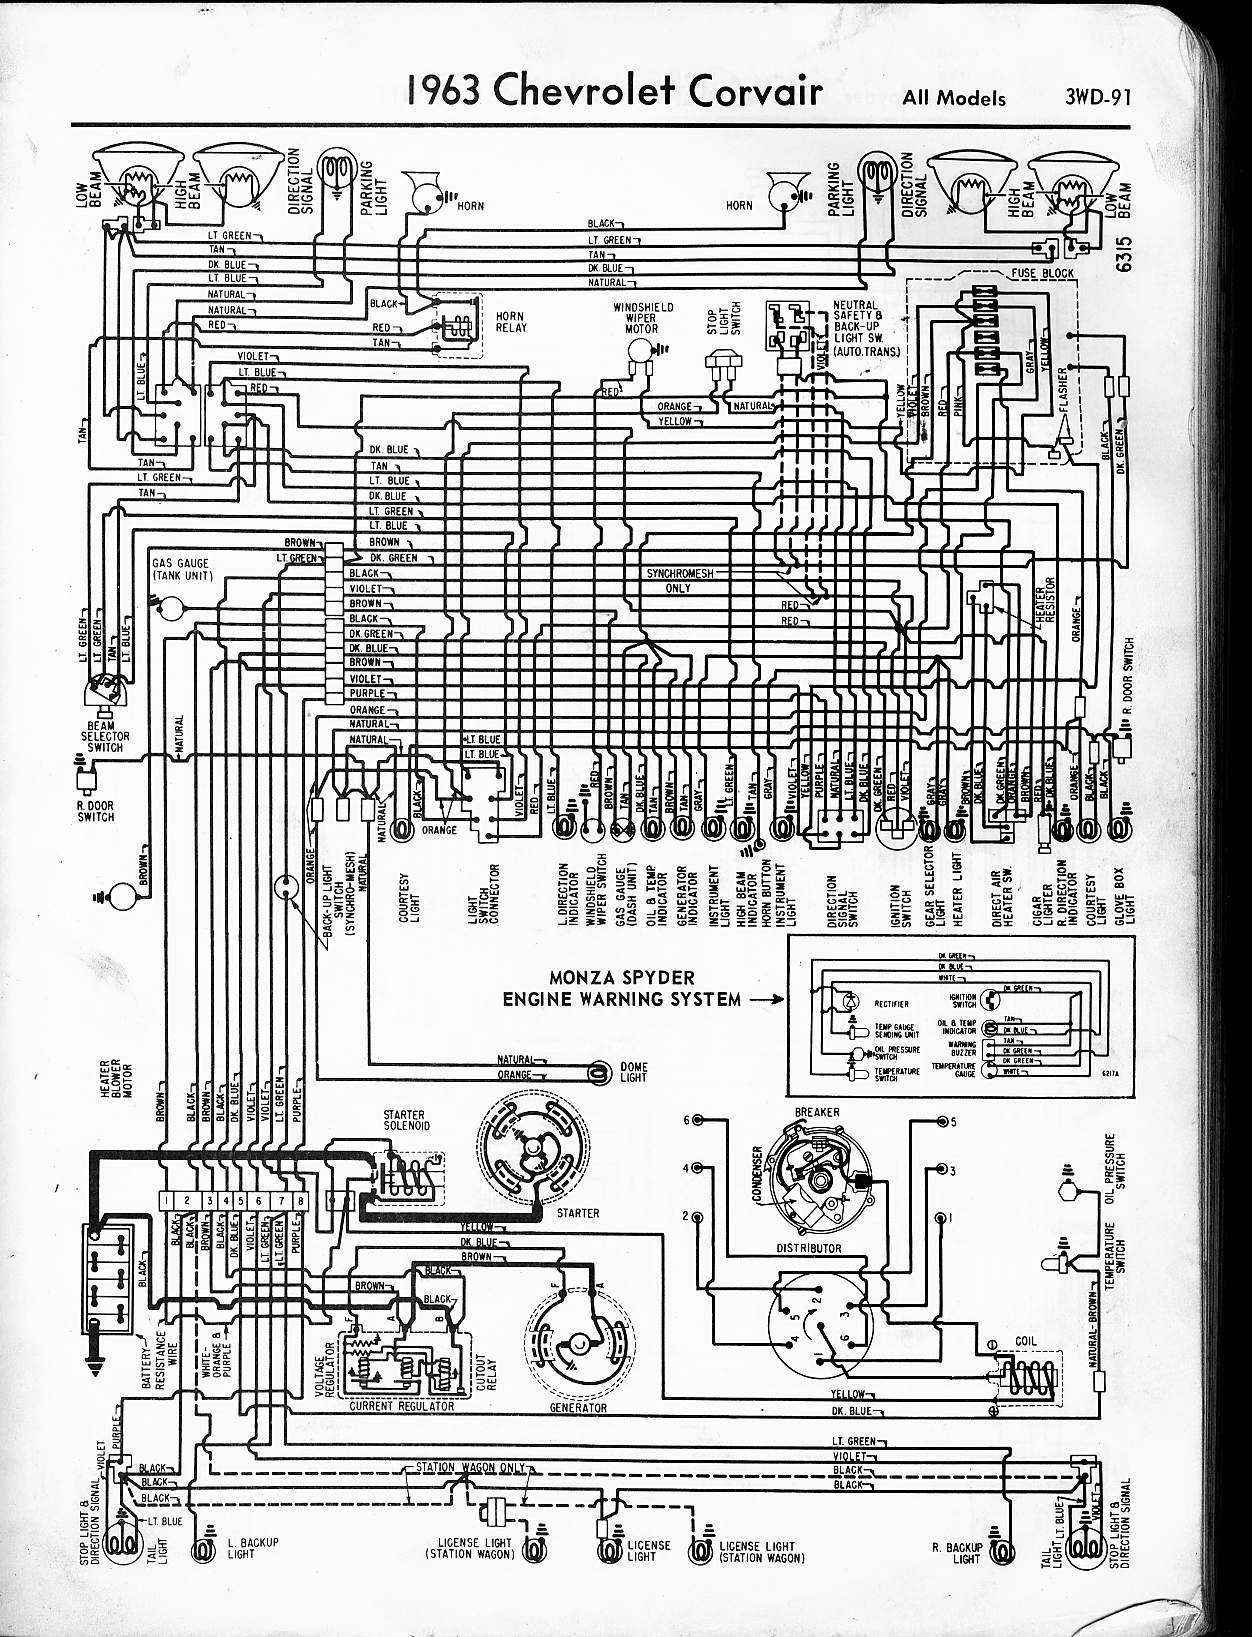 57 65 chevy wiring diagrams rh oldcarmanualproject com 1979 Chevy Truck Wiring Diagram 1979 Chevy Truck Wiring Diagram